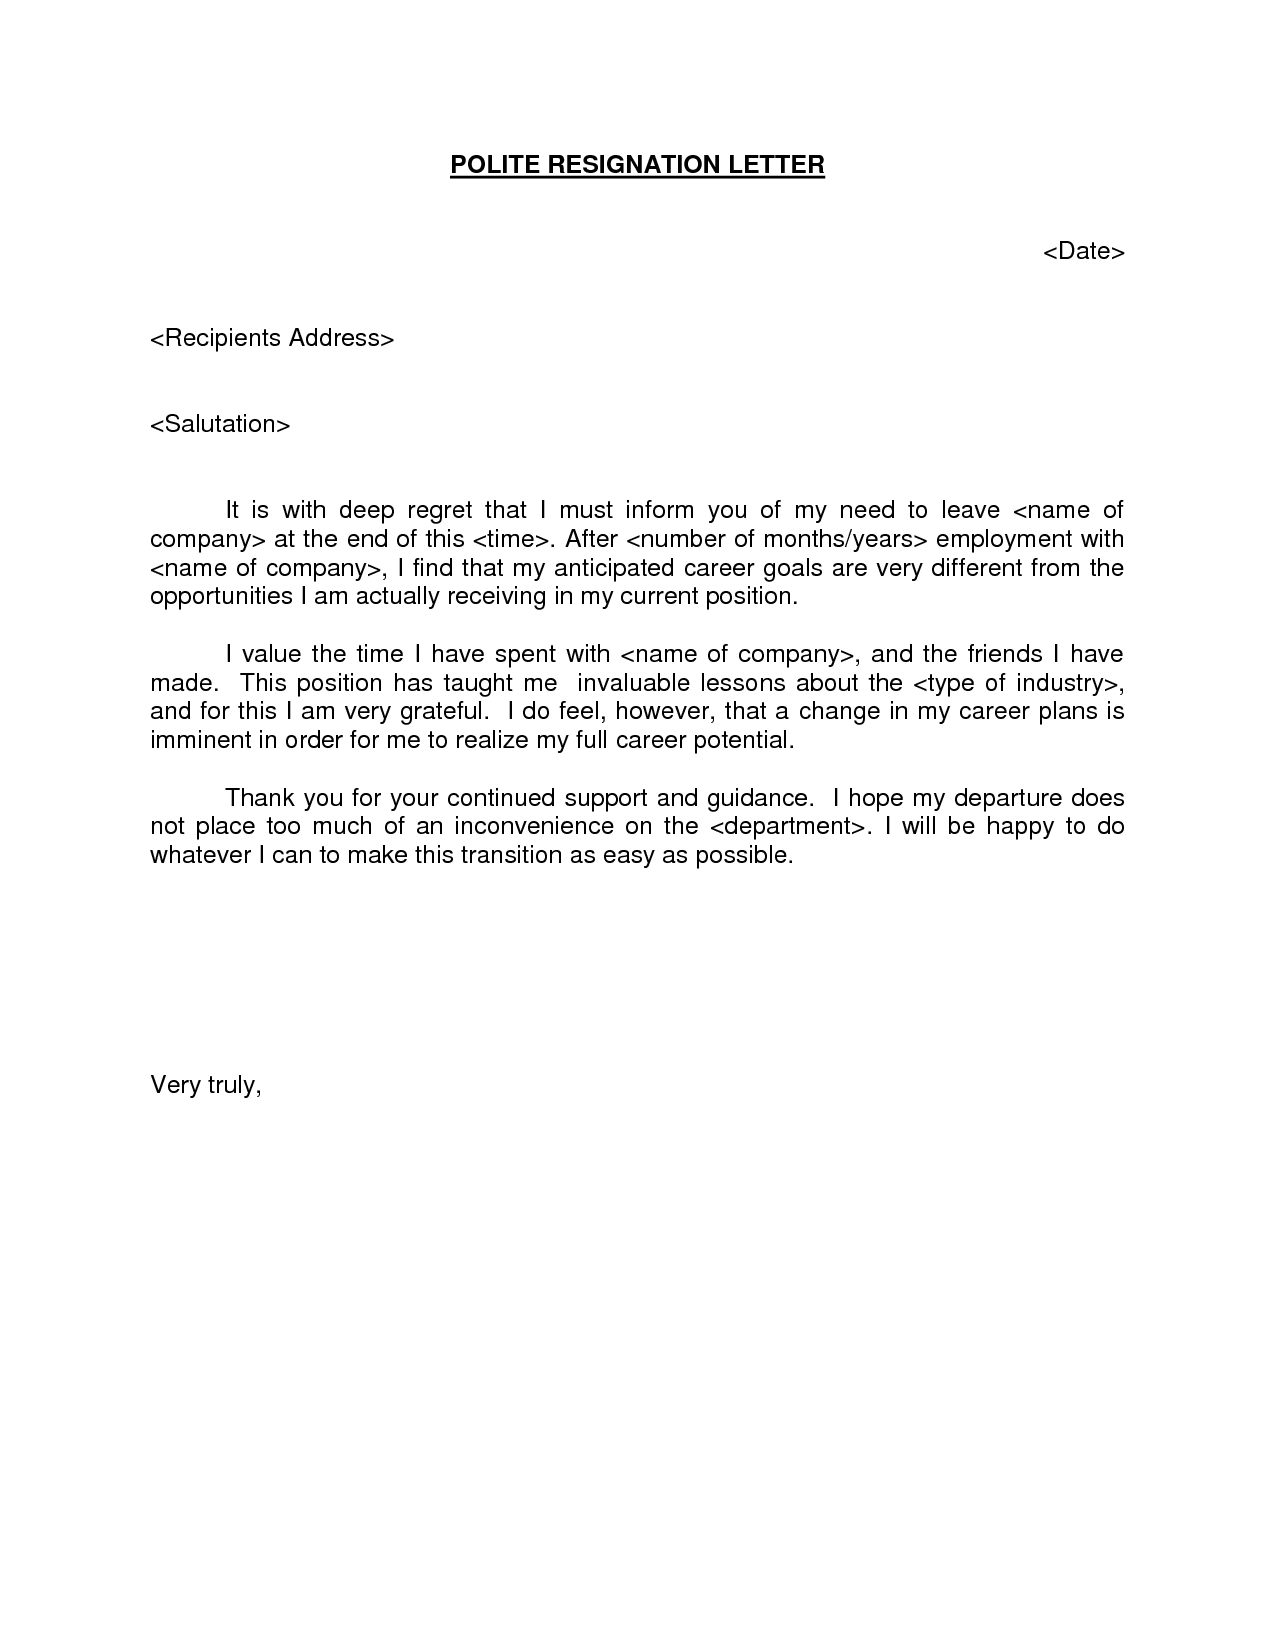 How to write a resignation letter even when you hate your job polite resignation letter bestdealformoneywriting a letter of resignation email letter sample pronofoot35fo Choice Image